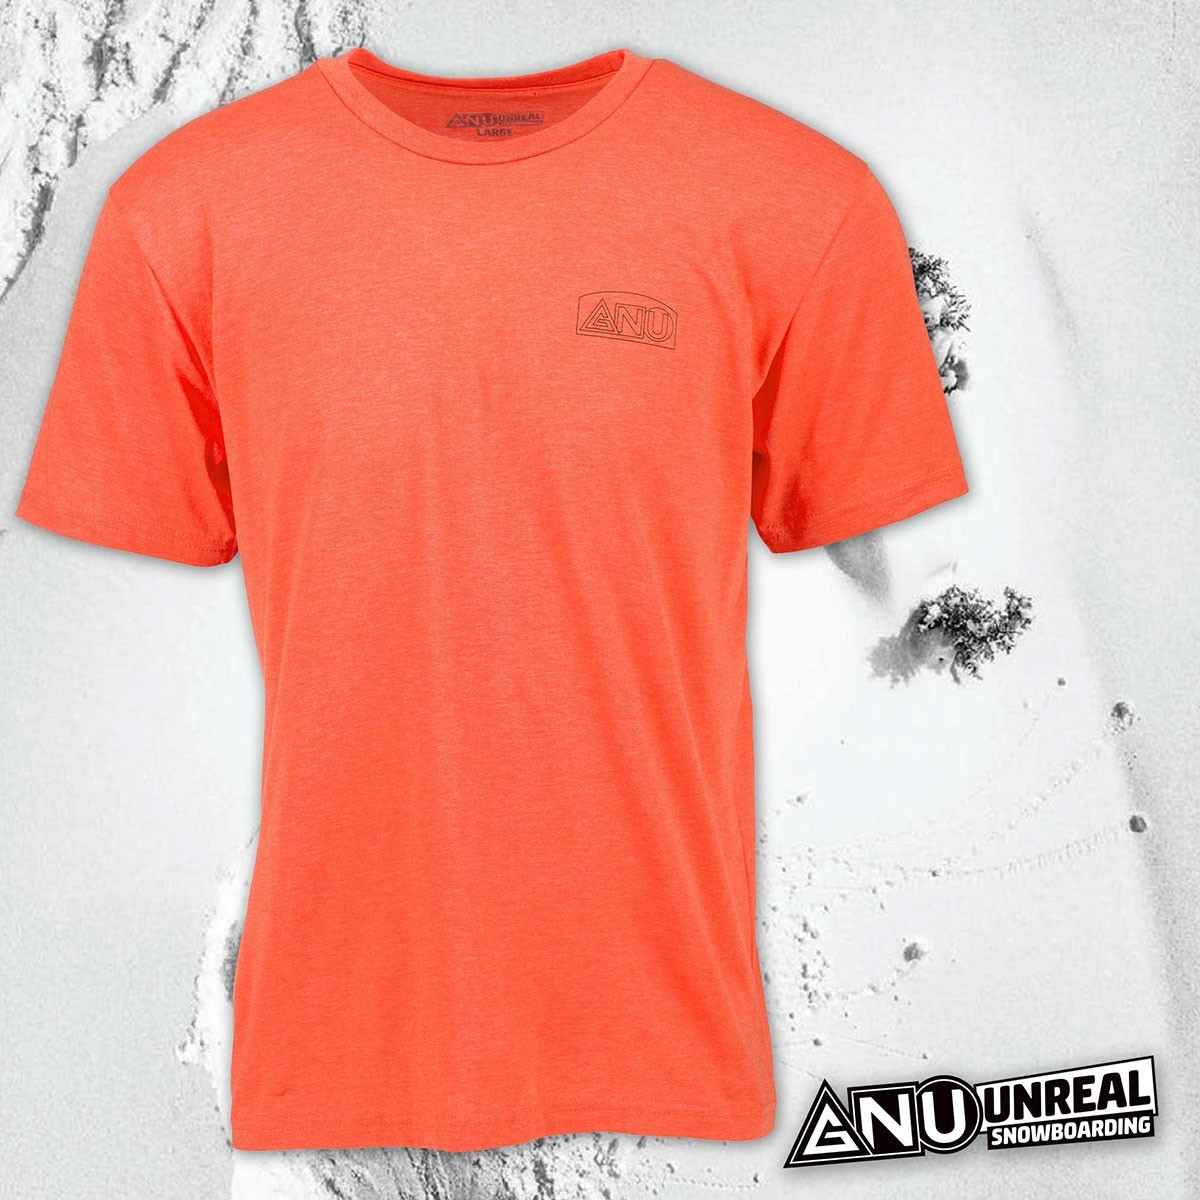 GNU HANDBUILT TEE HEATHER GREY/ORANGE - Изображение - AQUAMATRIX